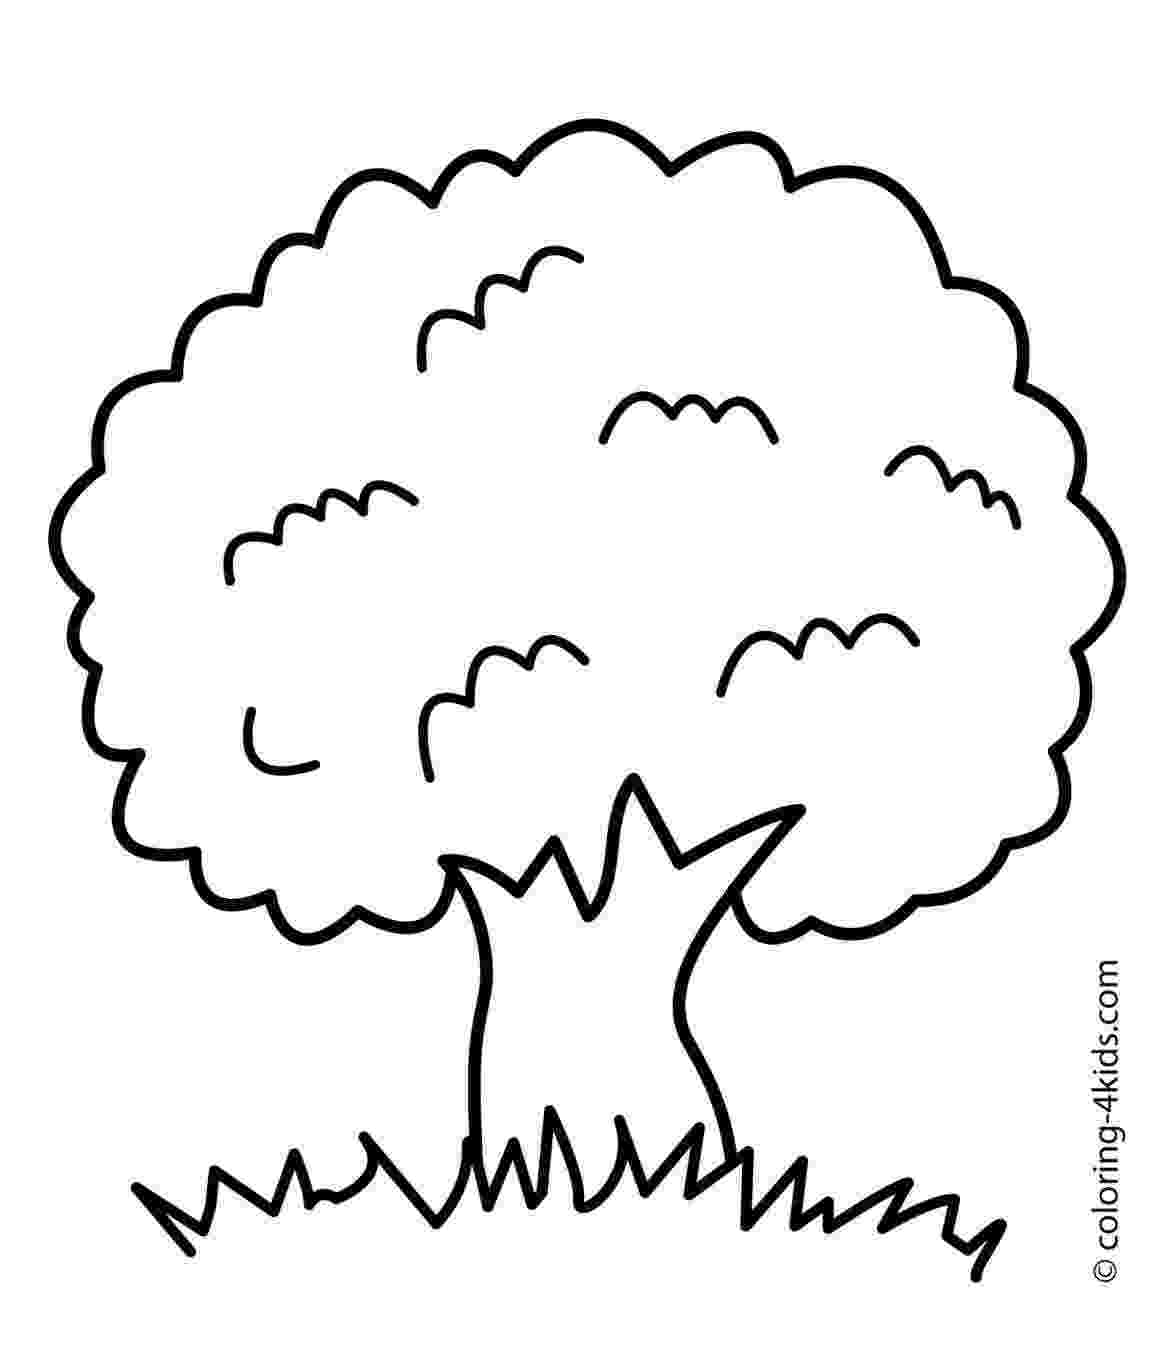 coloring pages of fruit trees fruit trees coloring sheet pages coloring fruit trees of